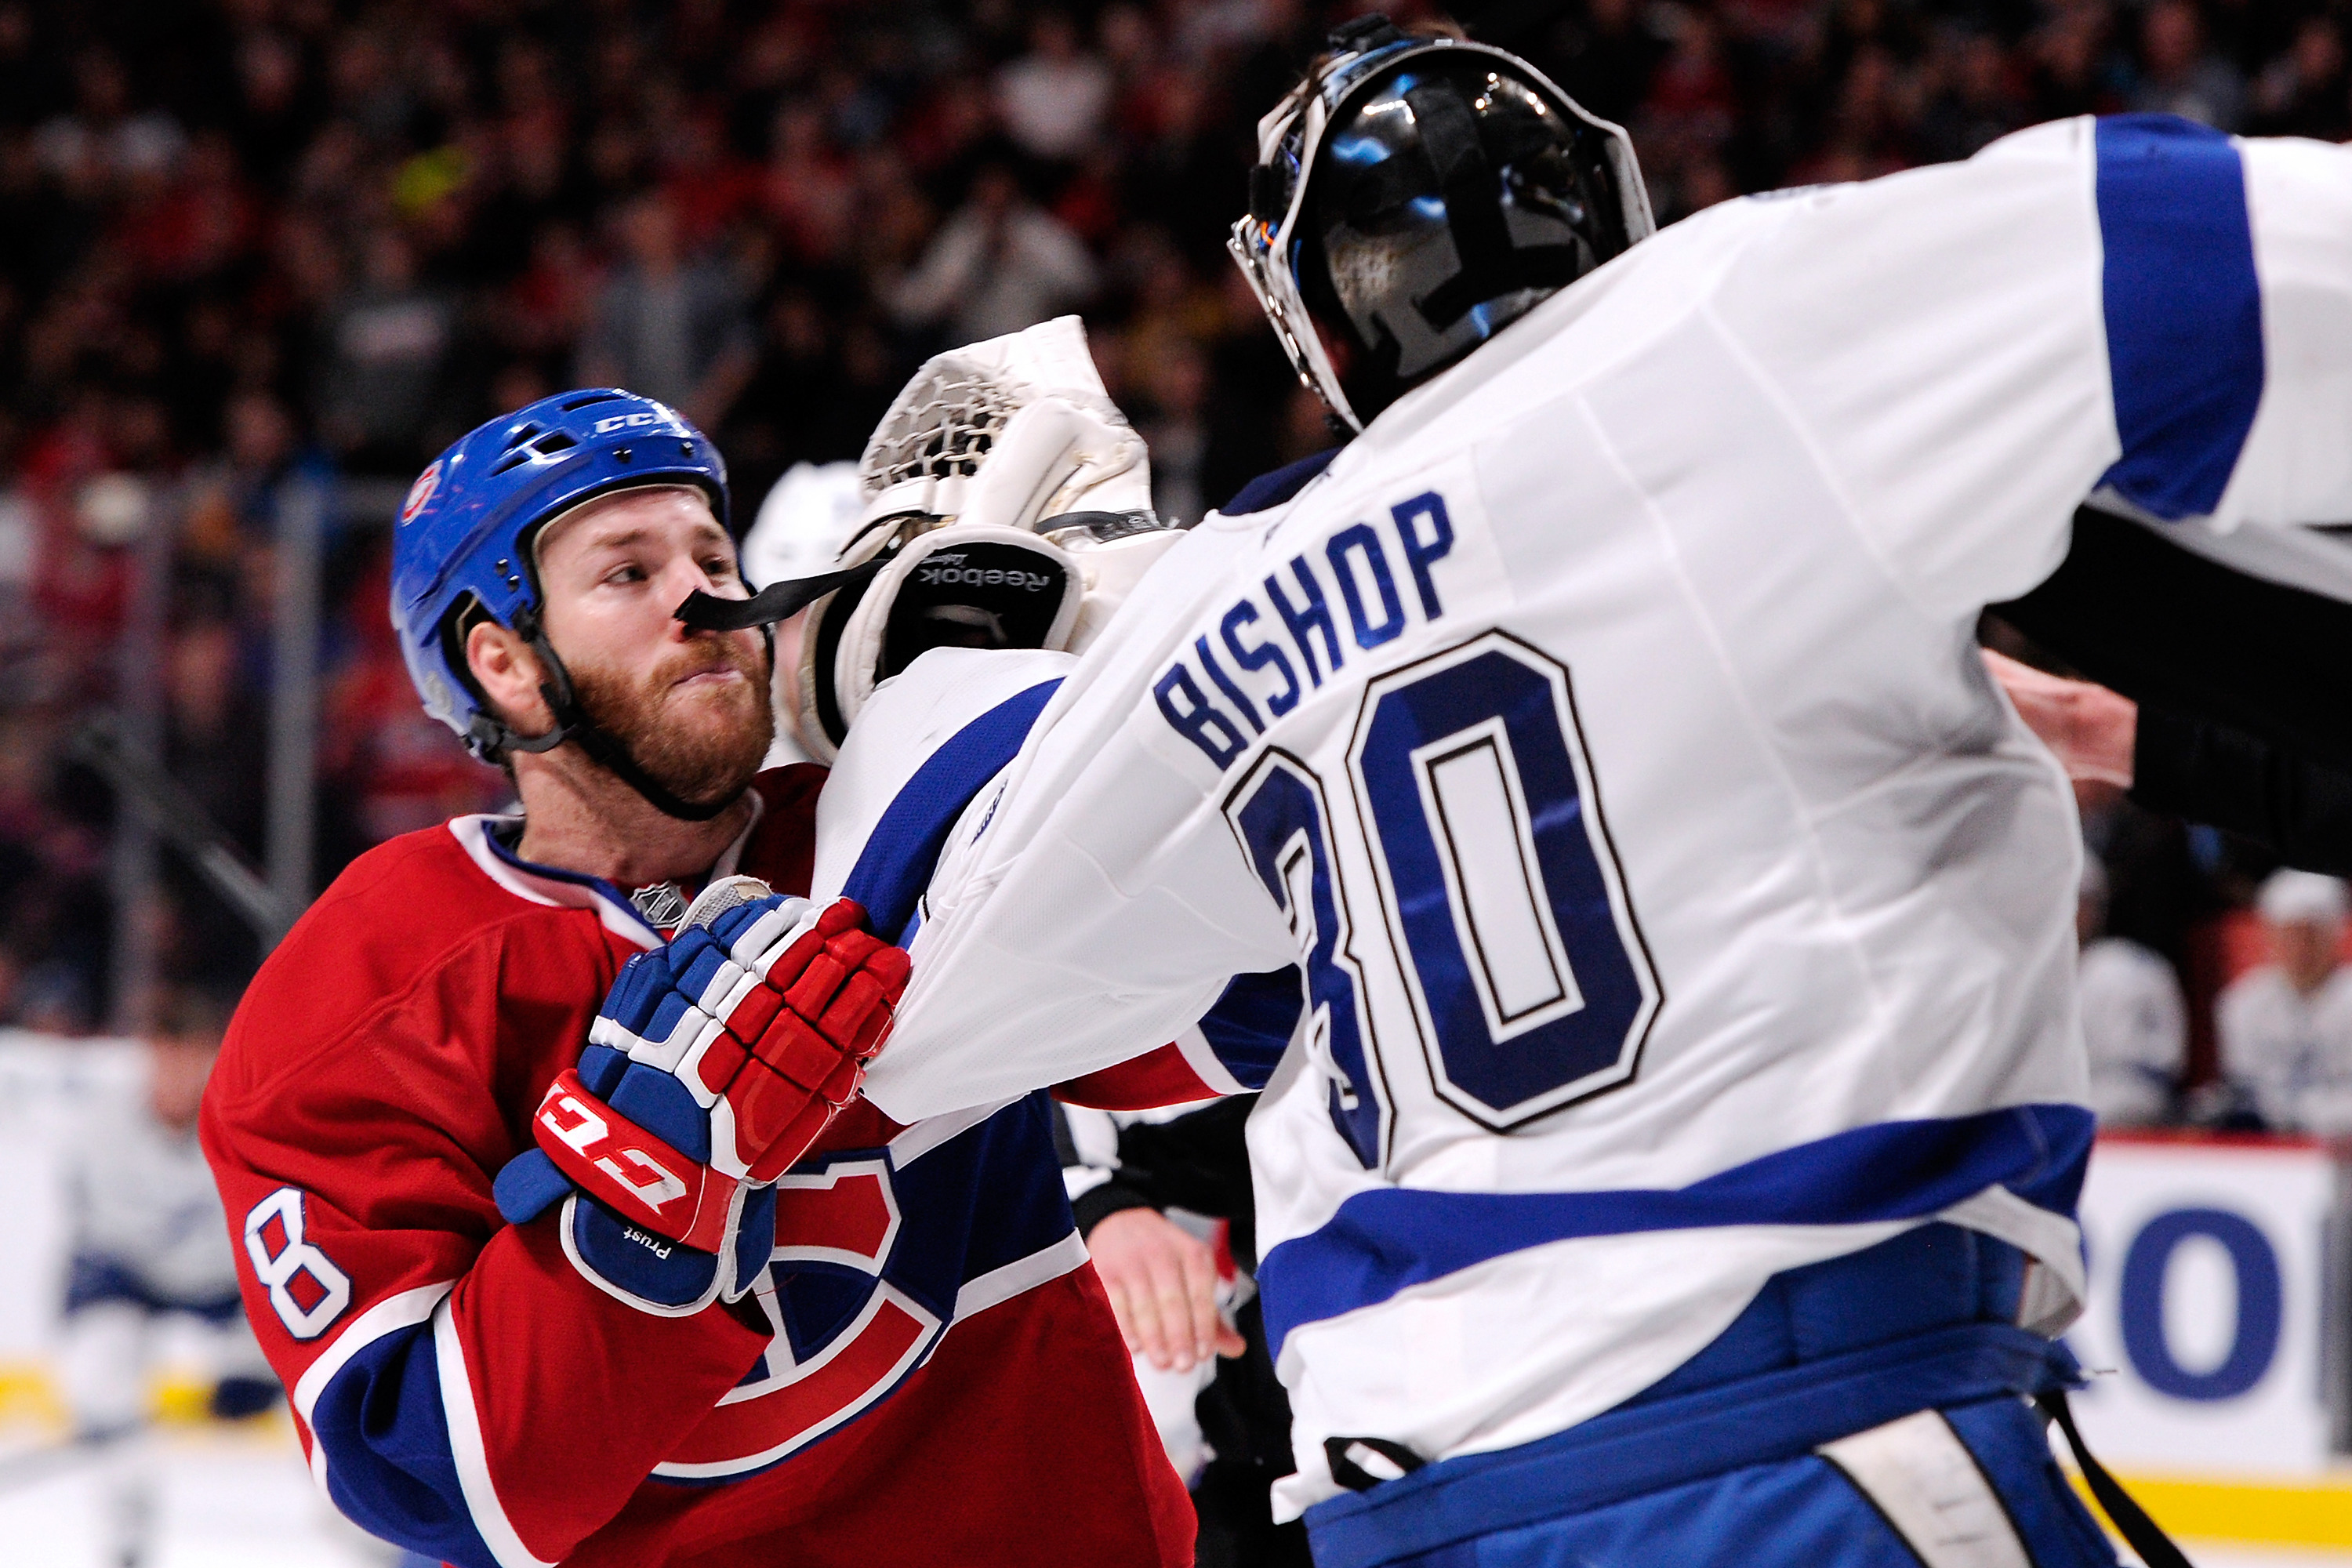 Ben Bishop, Brandon Prust debate meaning of life on ice and it doesn't end well (VIDEO)